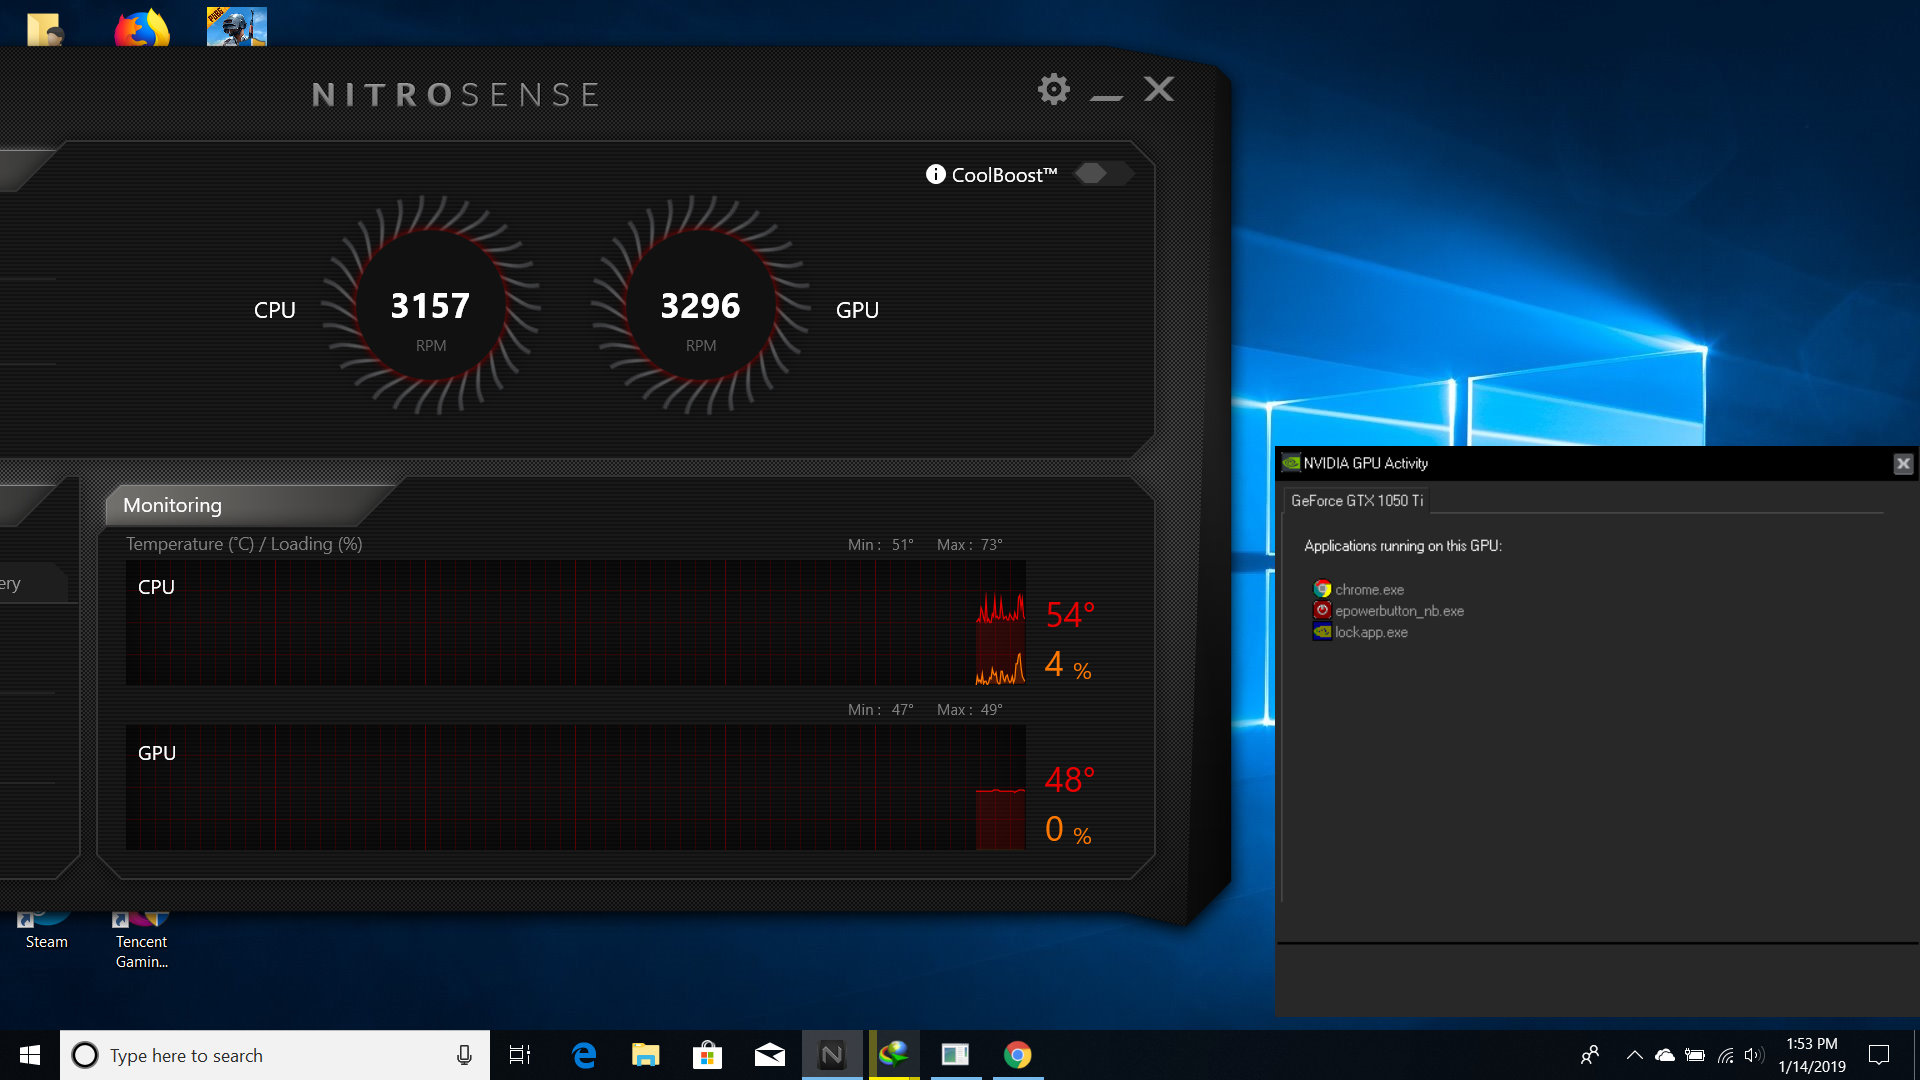 help::::Nitro sense monitoring 0% gpu usage  how to fix this — Acer